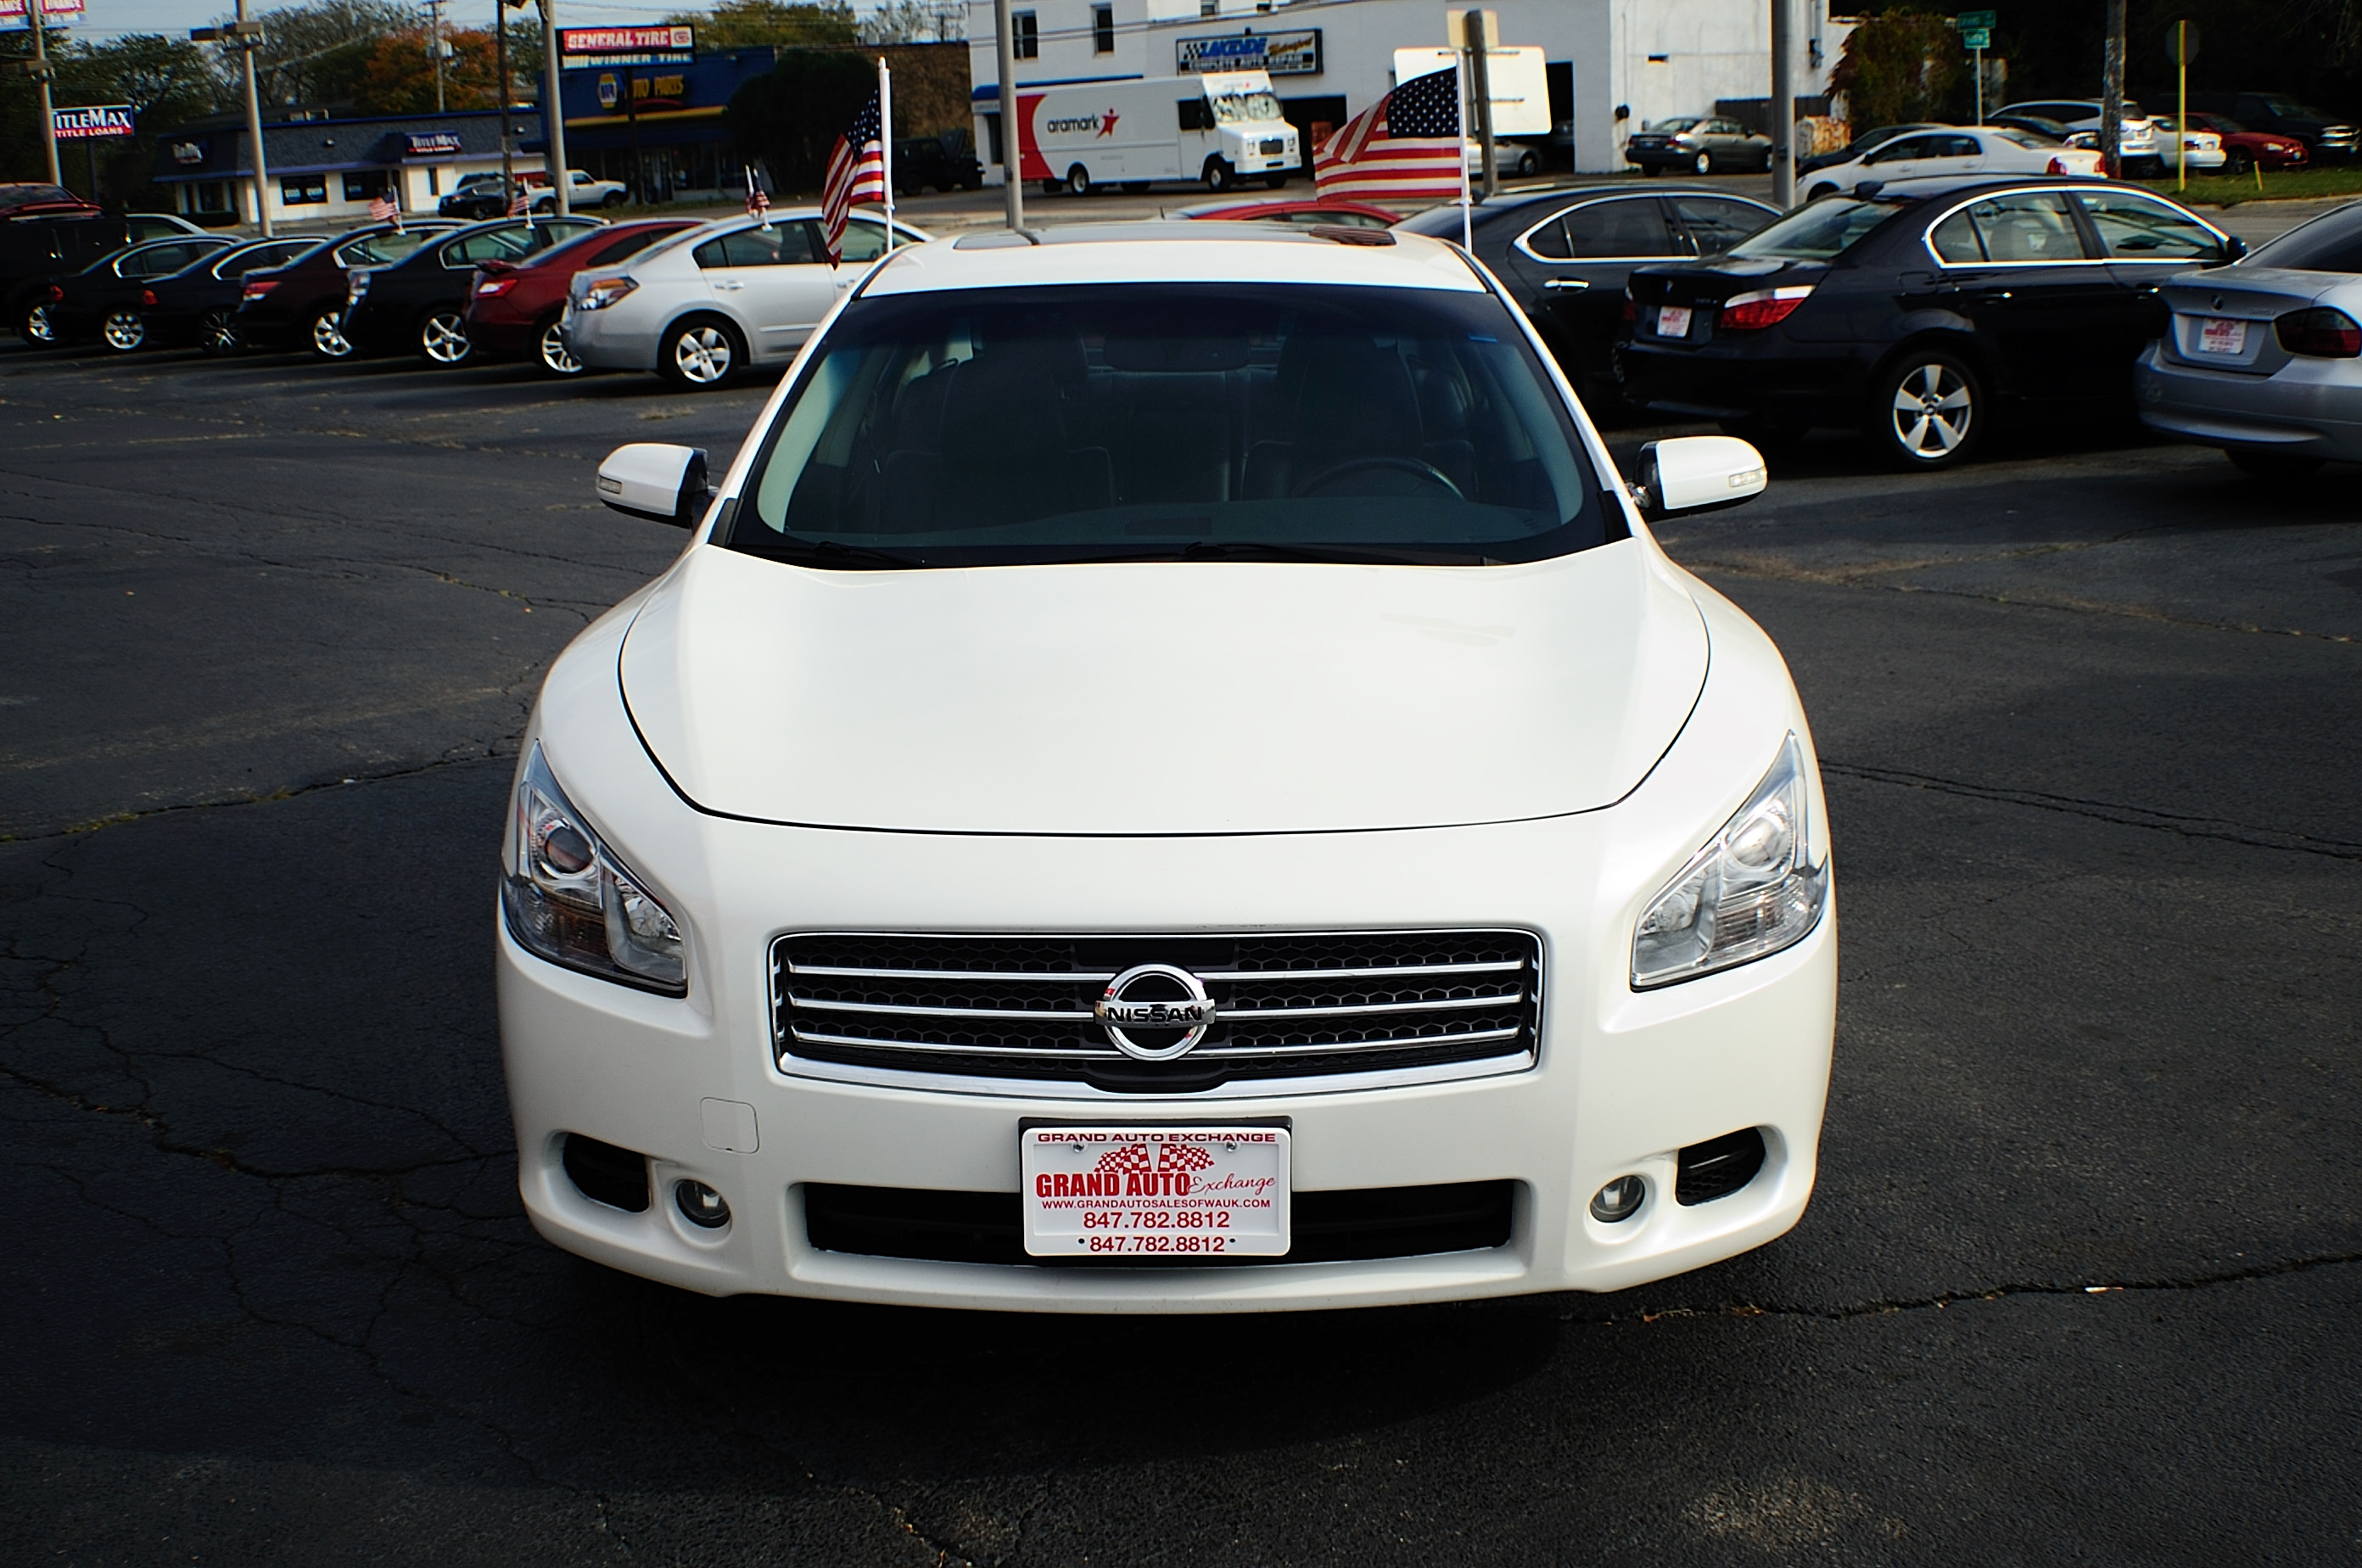 2009 Nissan Maxima White Navigation Sedan Used Car Sale Gurnee Kenosha Mchenry